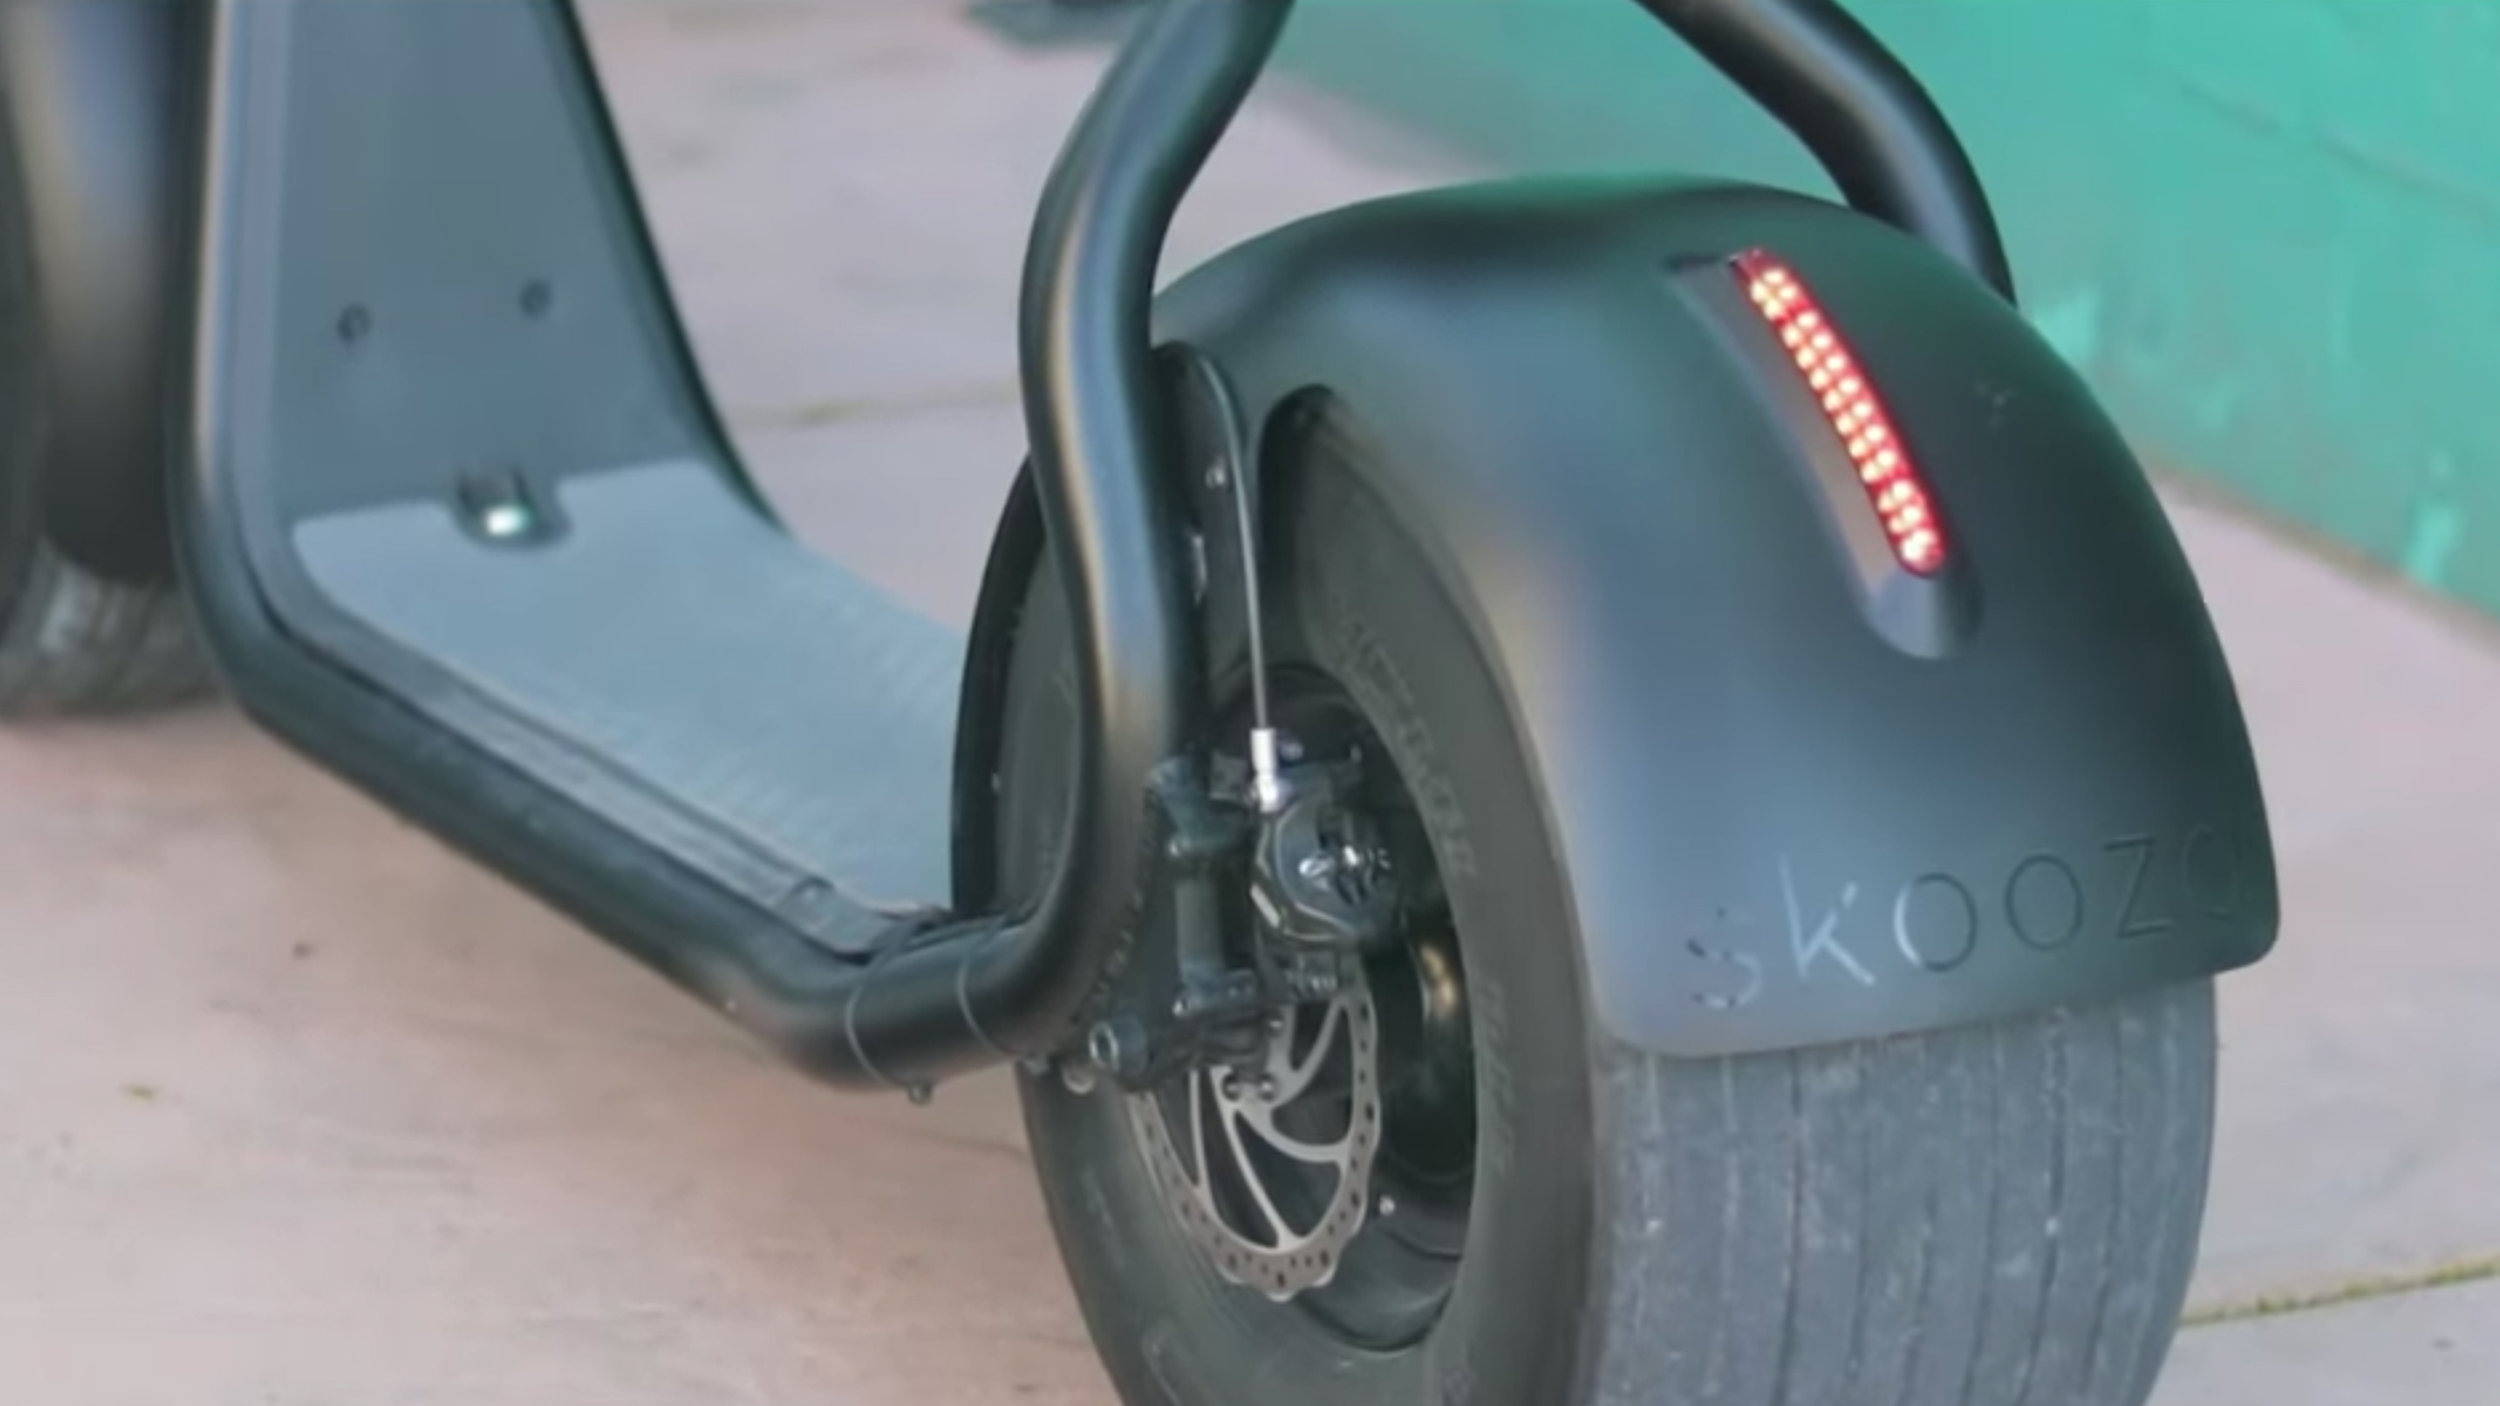 electrified-reviews-skooza-k1s-fat-tire-electric-scooter-review-rear-light.jpg